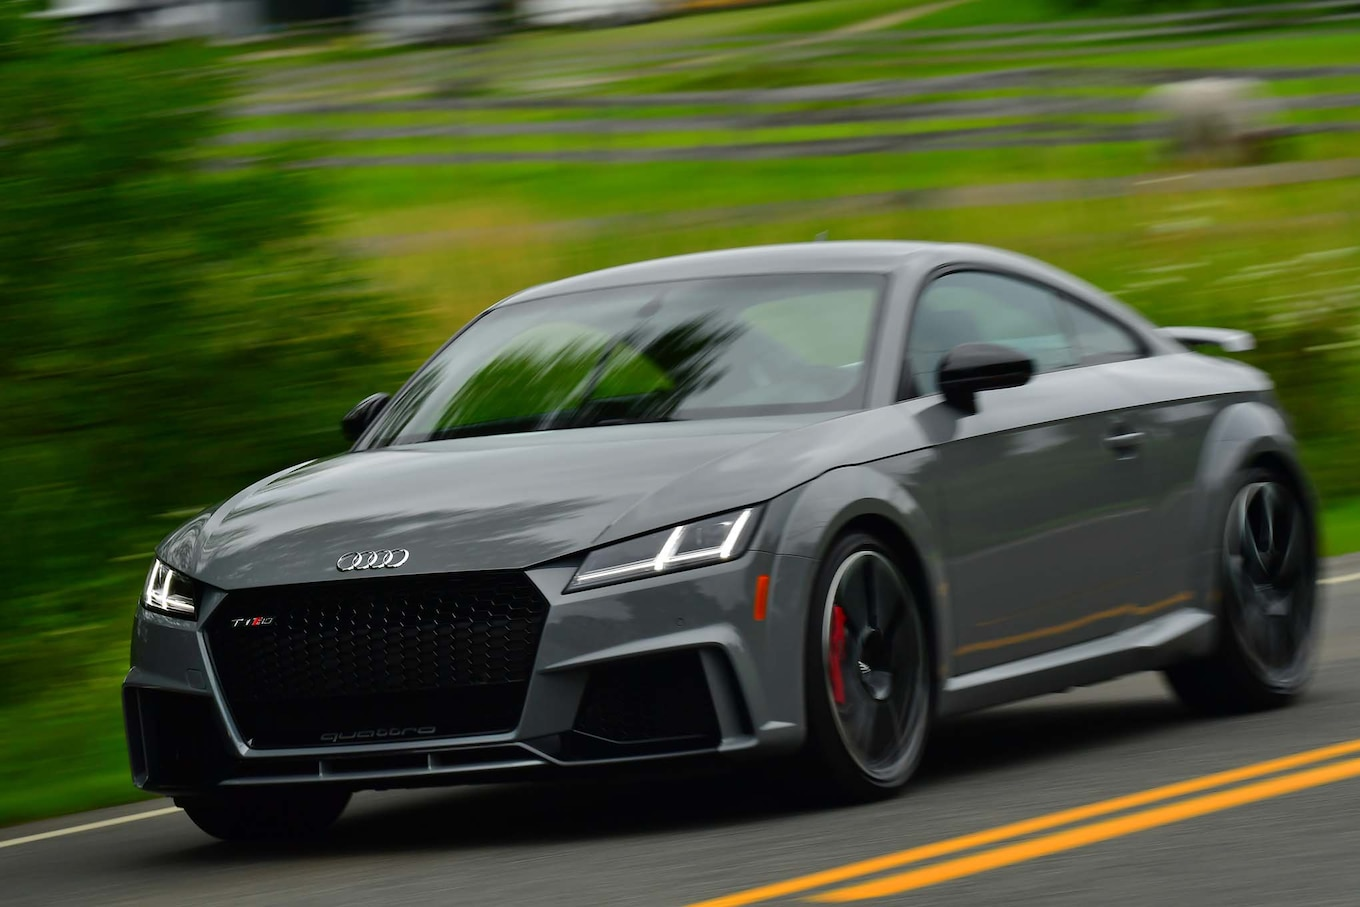 Audi Concept Car Wallpaper 2018 Audi Tt Rs First Drive Review Motor Trend Canada